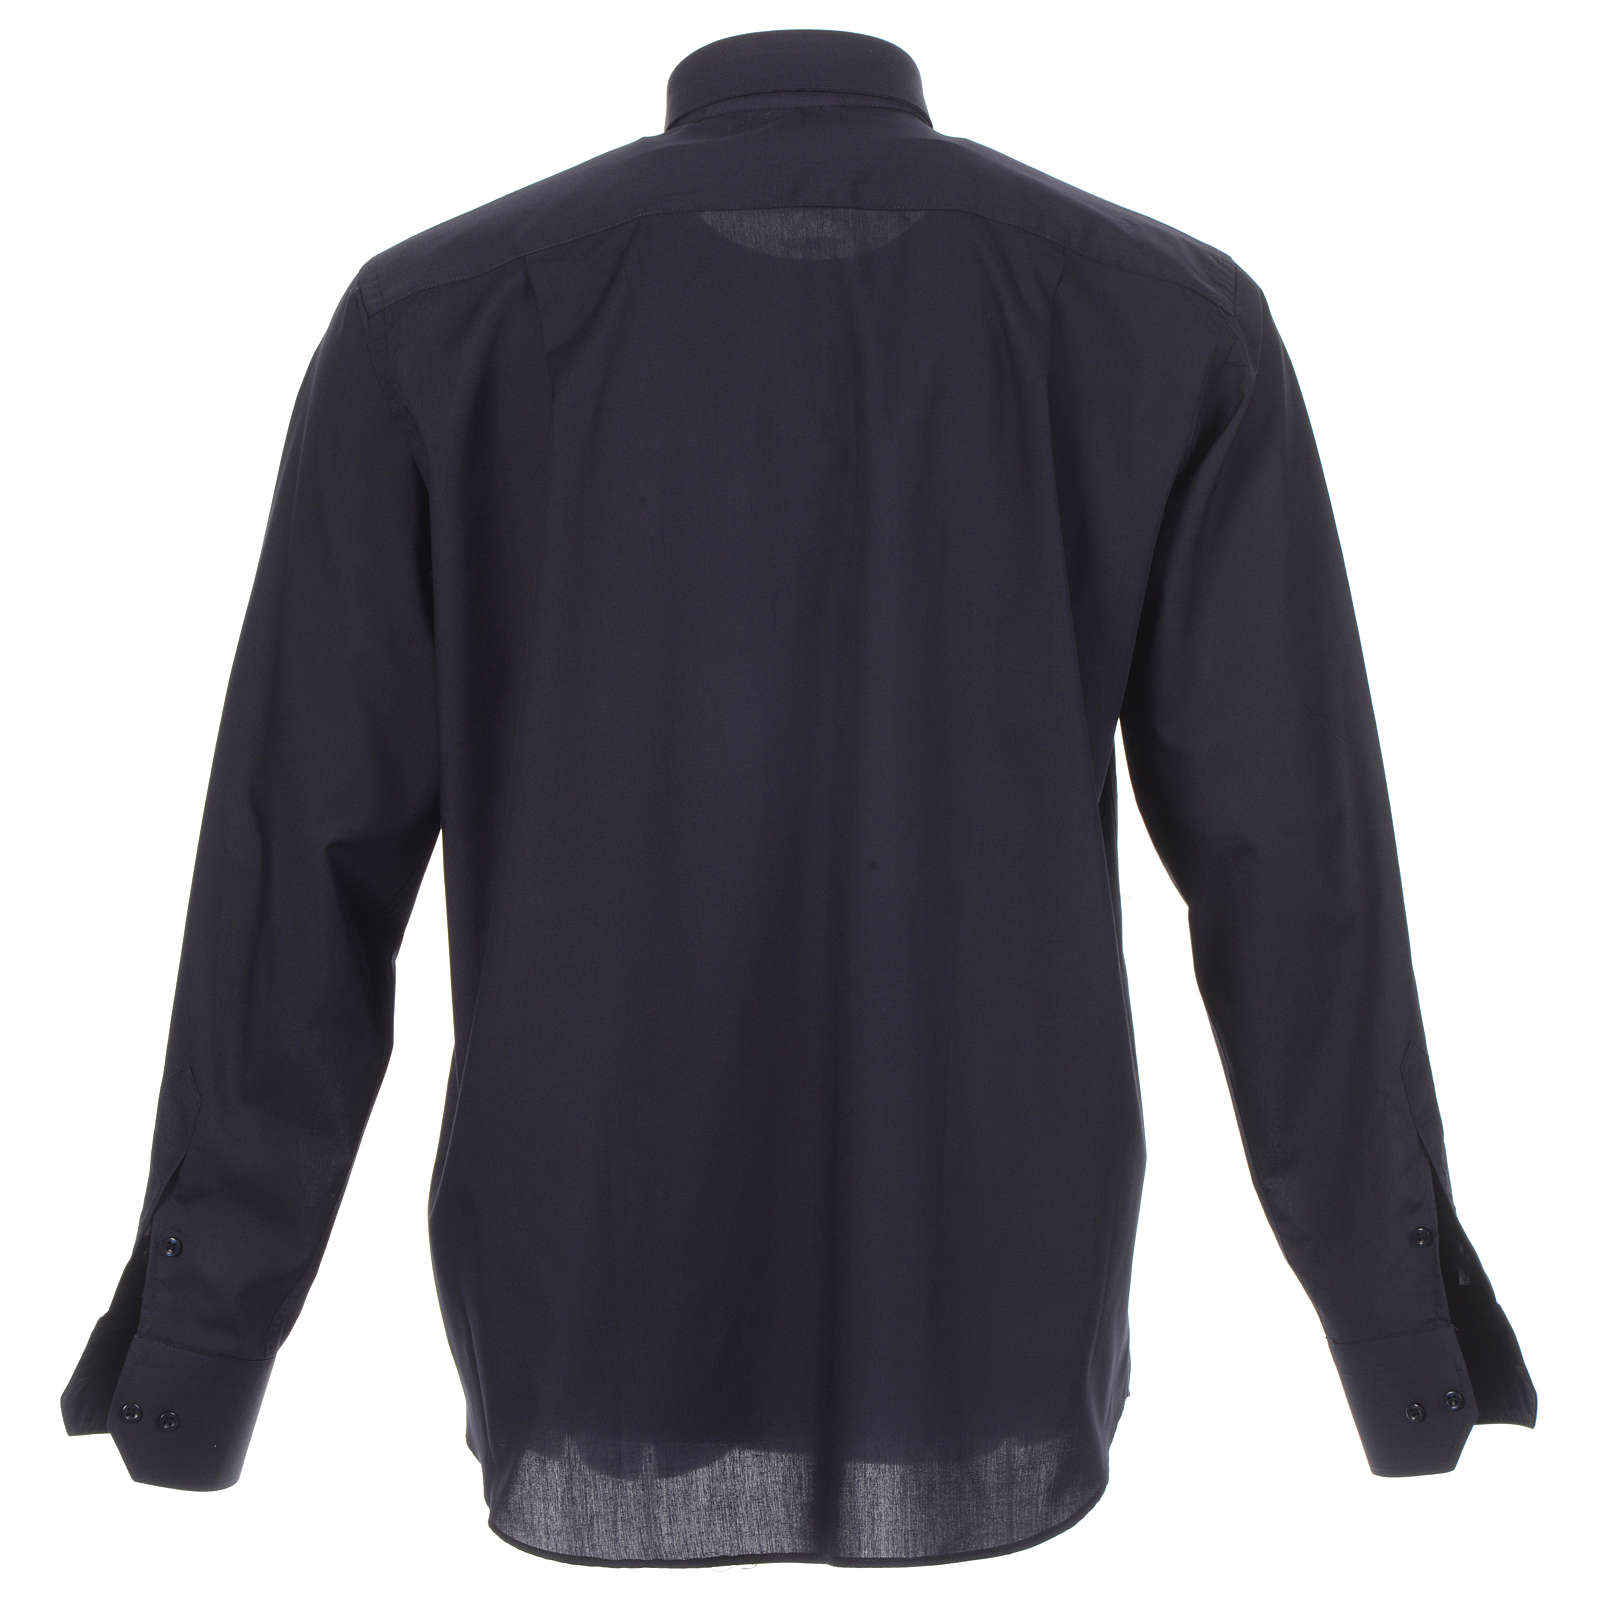 Clerical Long Sleeve Shirt in solid color and blue diagonal 4